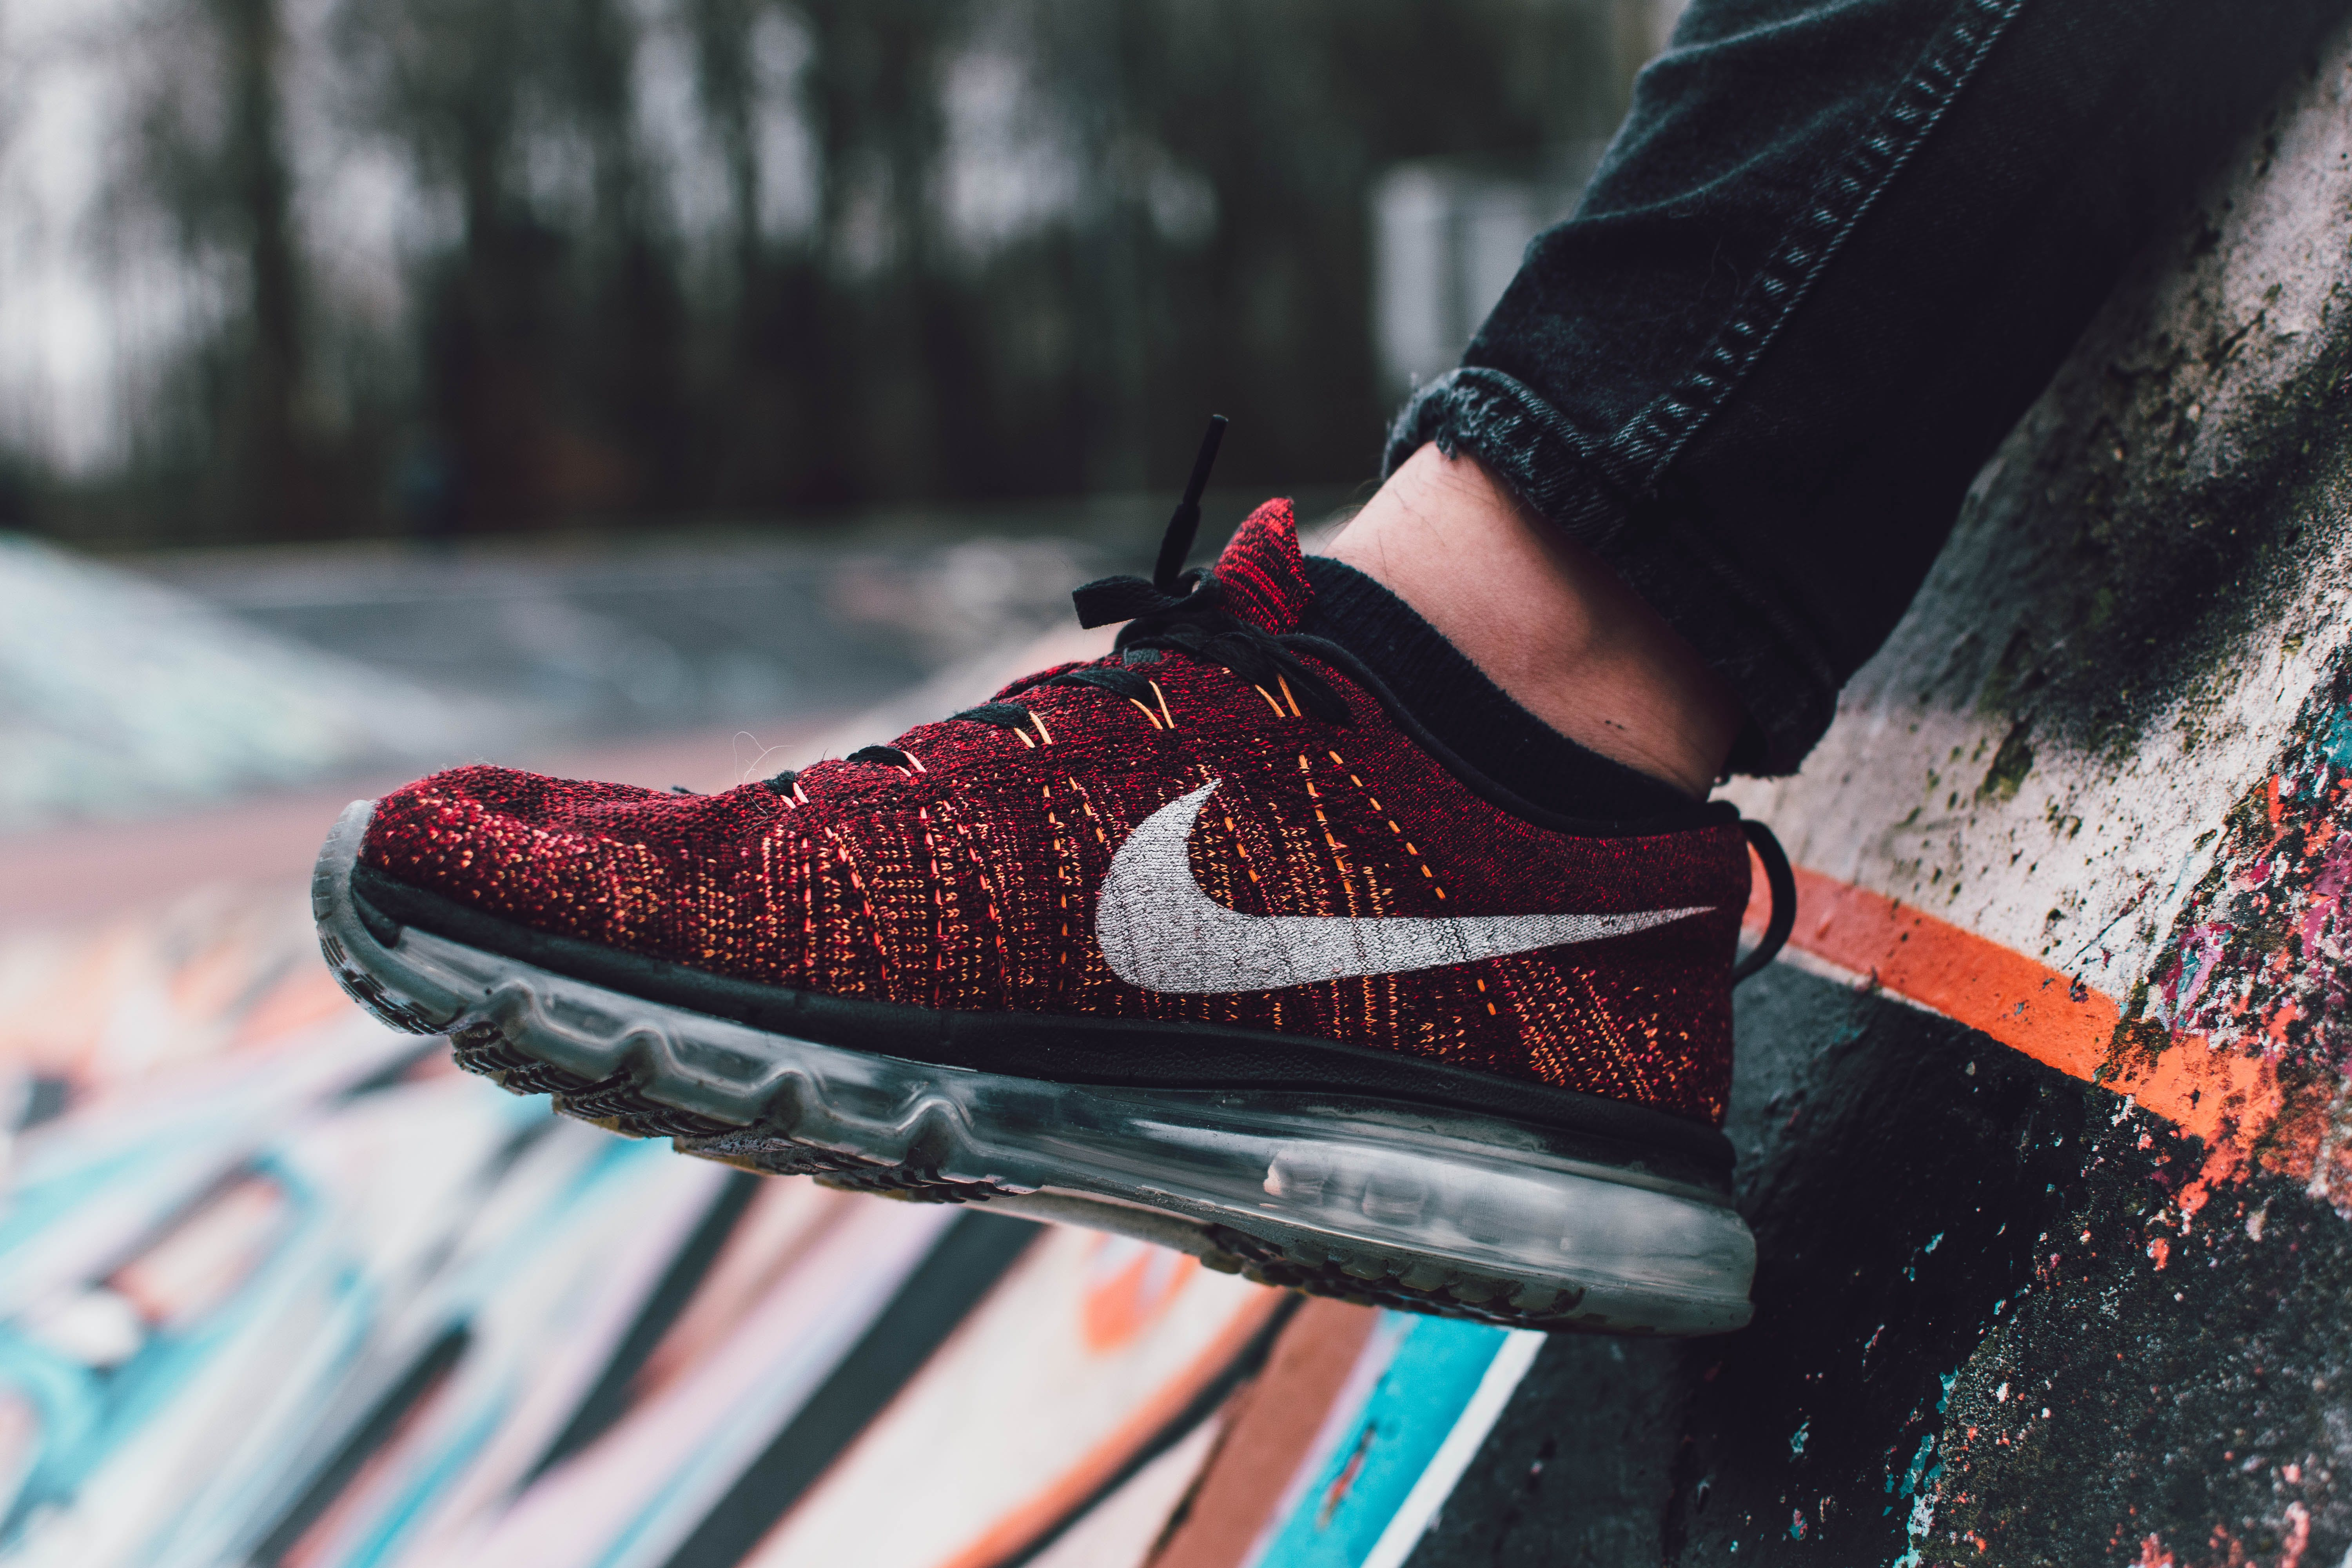 Close-Up Photography of Red and Black Nike Running Shoe